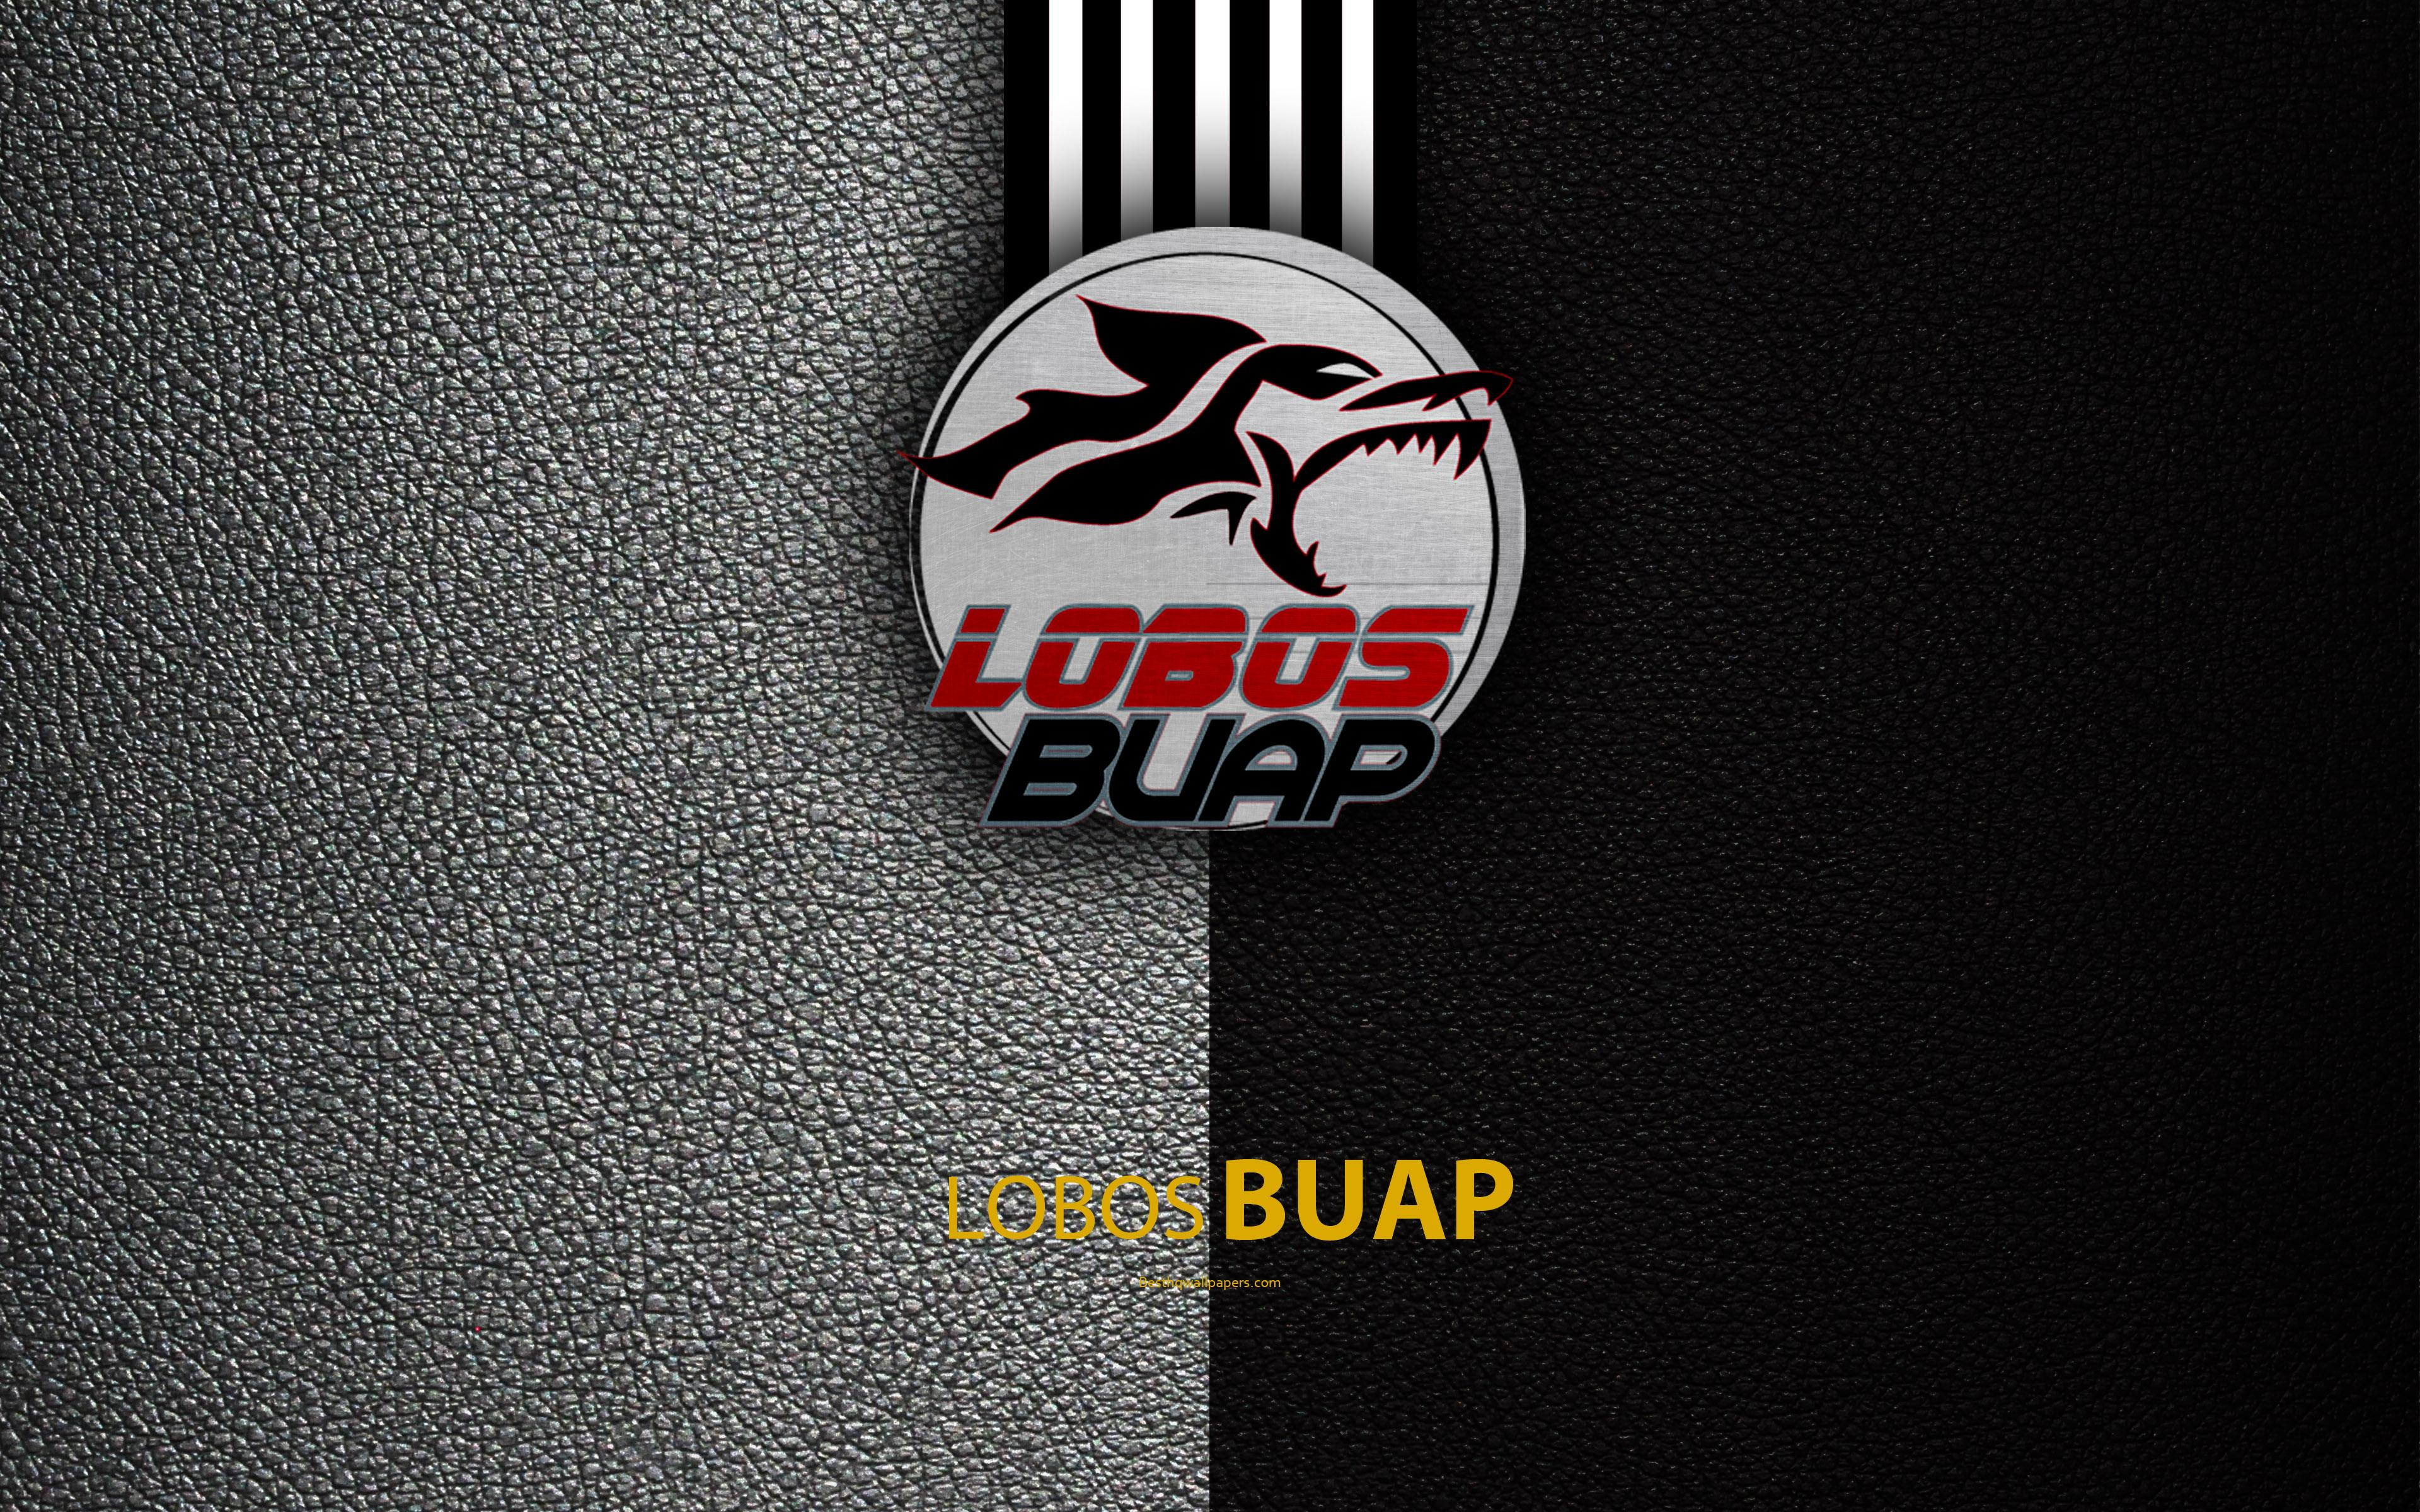 Download wallpapers Lobos BUAP, 4k, leather texture, logo, Mexican